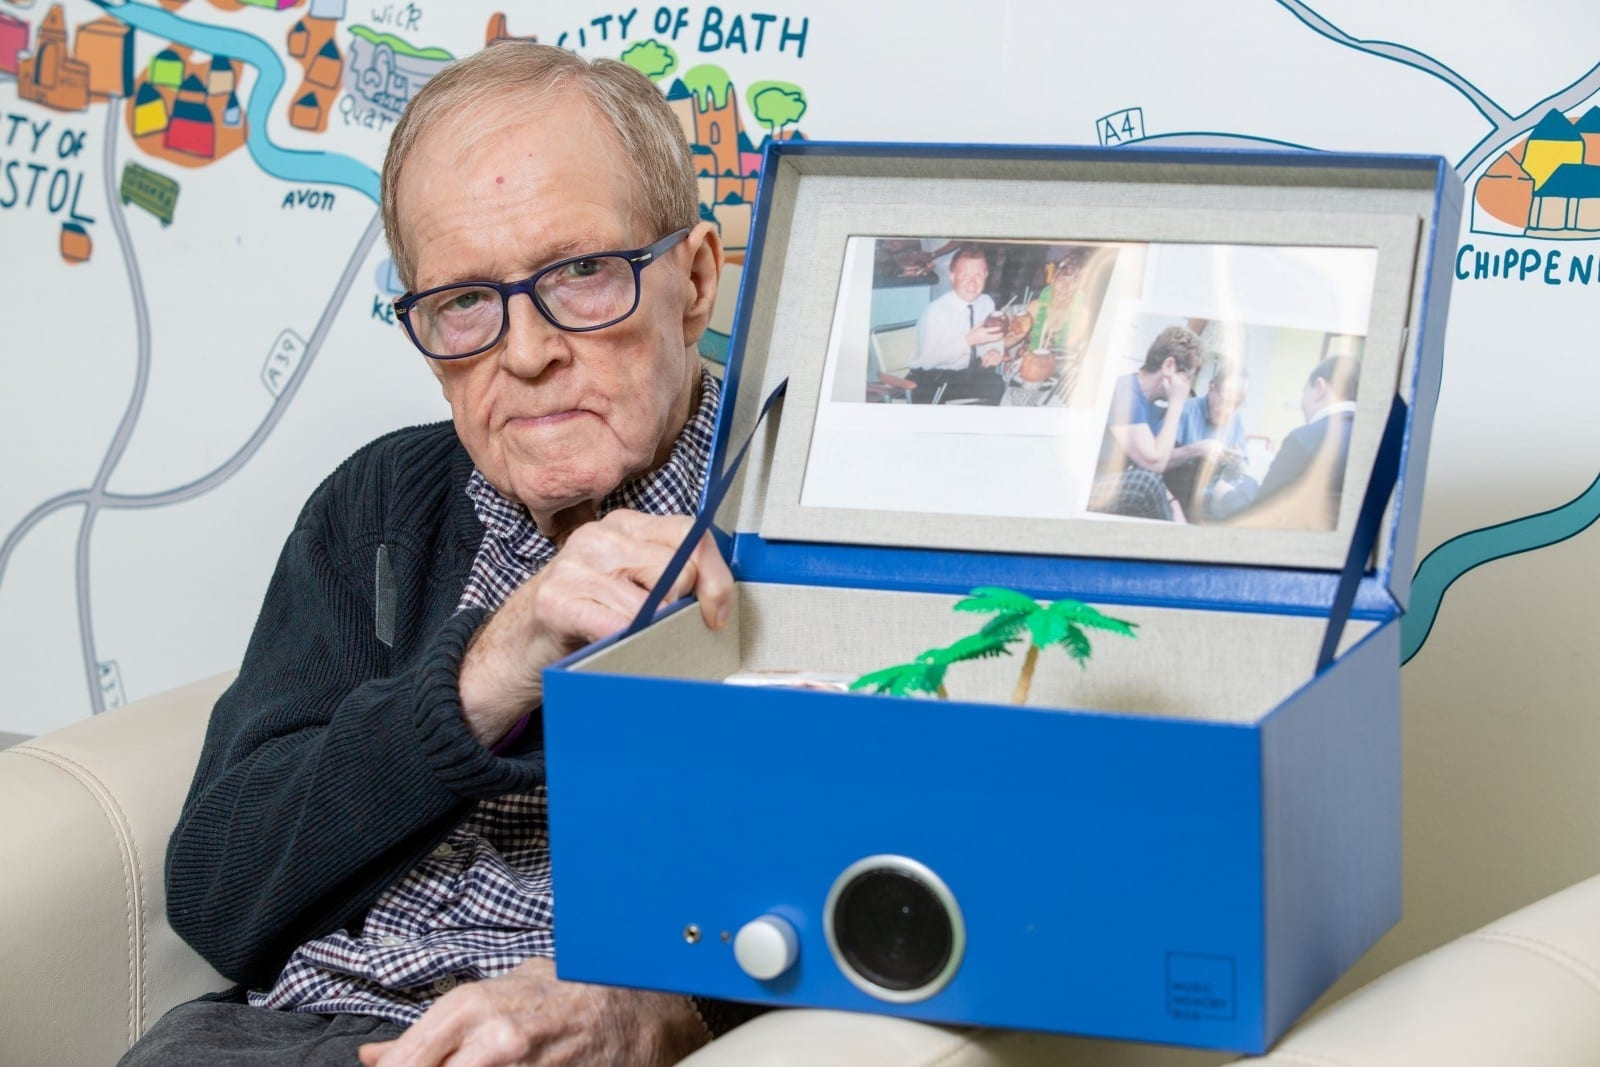 Husband Living With Dementia Finally Able To Reconnect With His Wife Thanks To 'Music Memory Box'